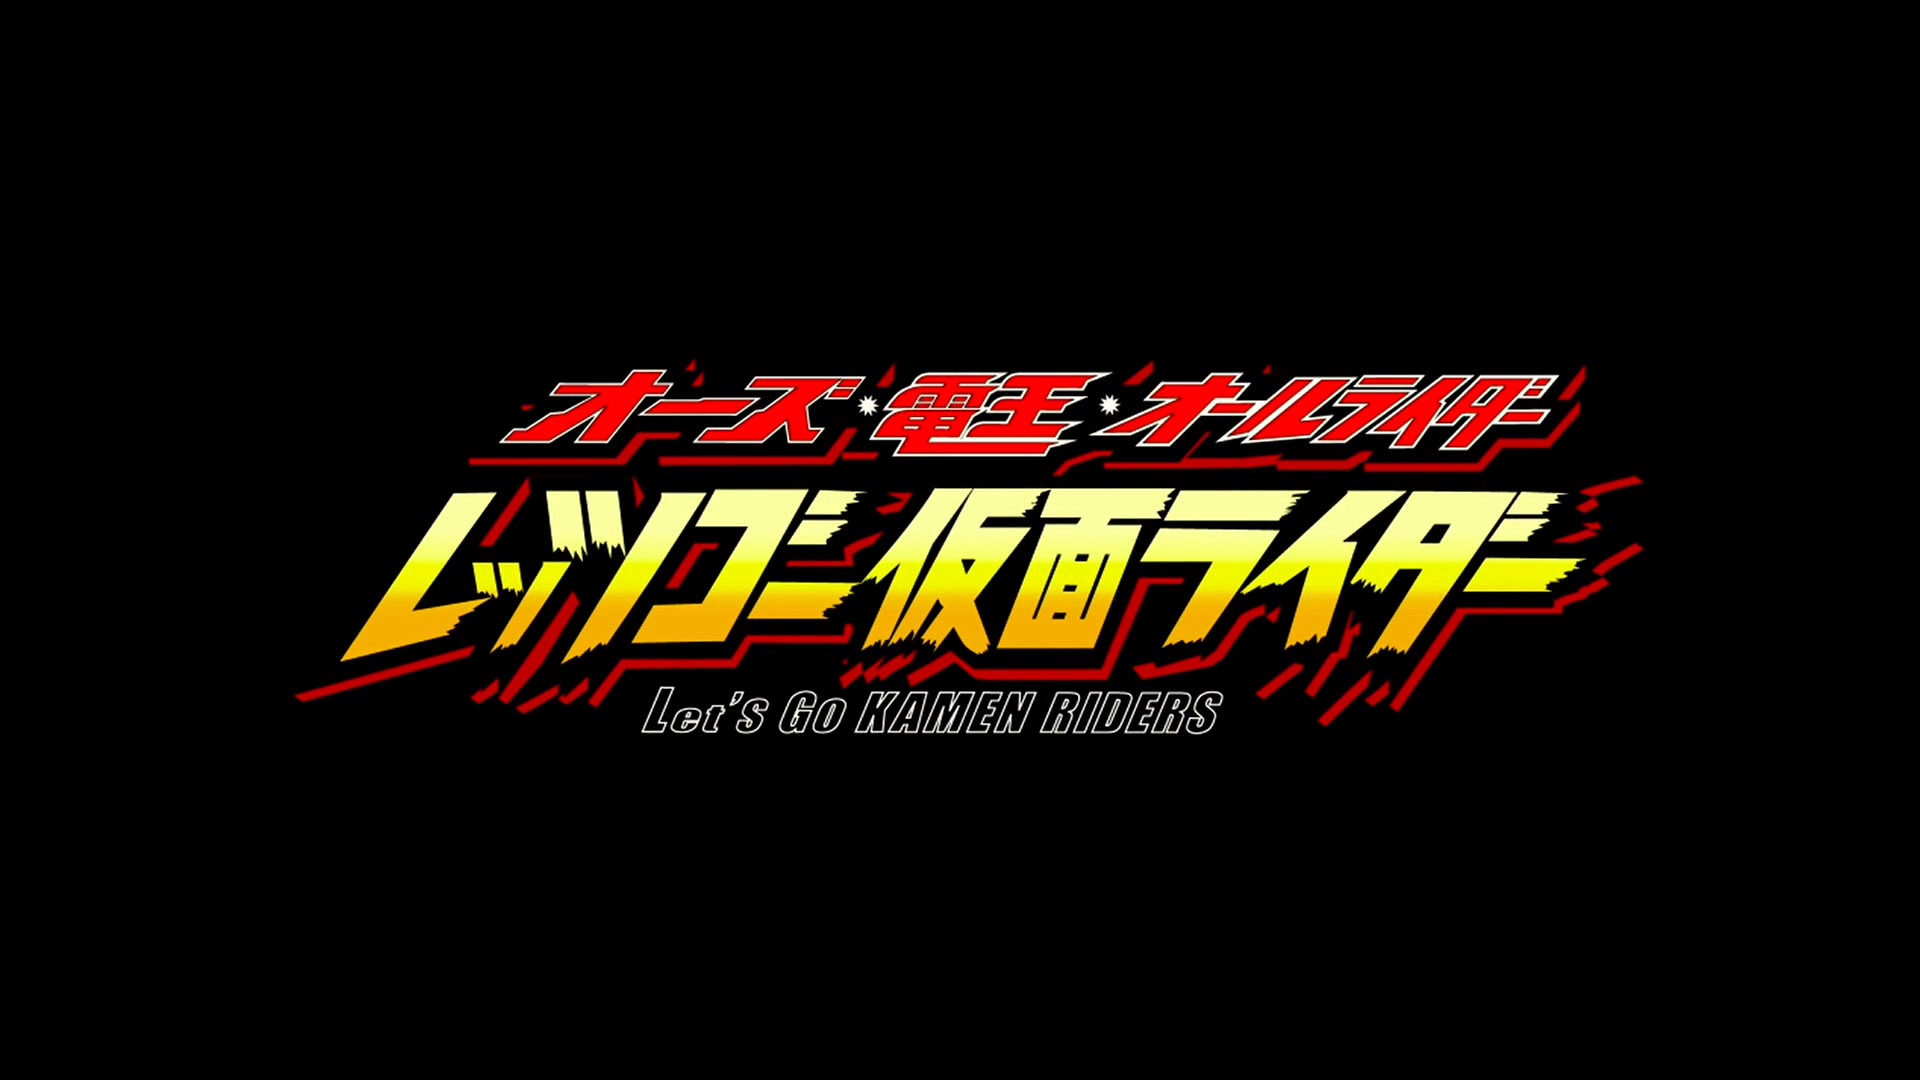 Ooo Den O All Rider In The Film Title